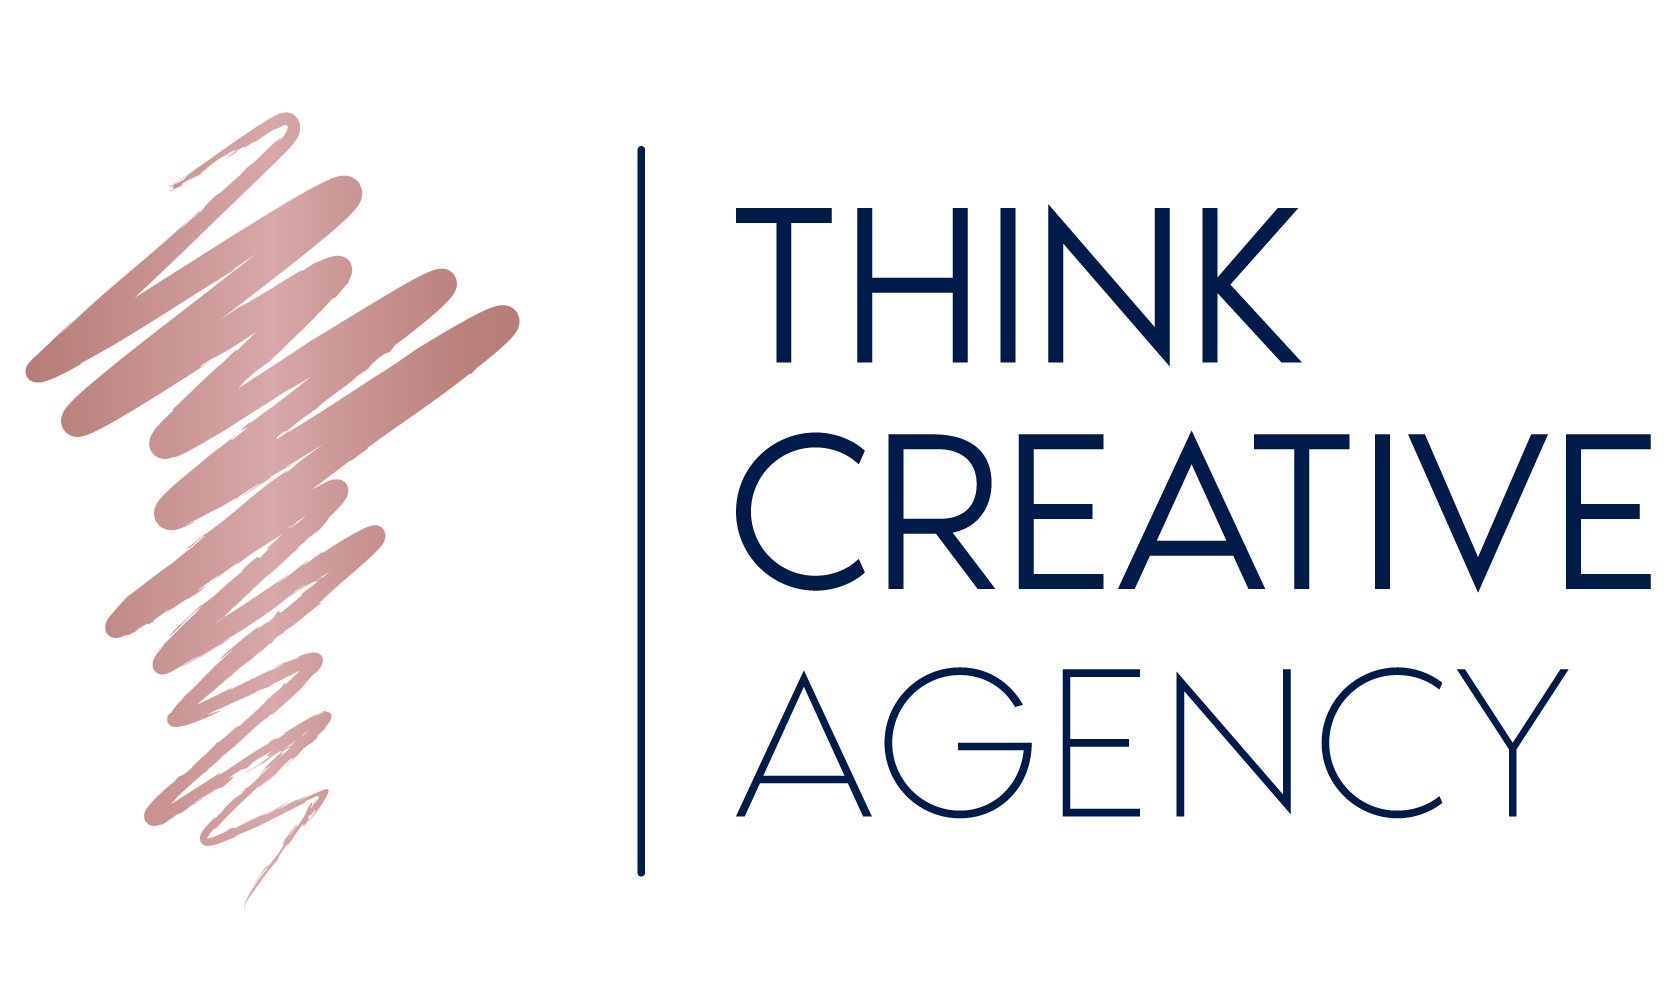 logo-thinkcreativeagency-blue